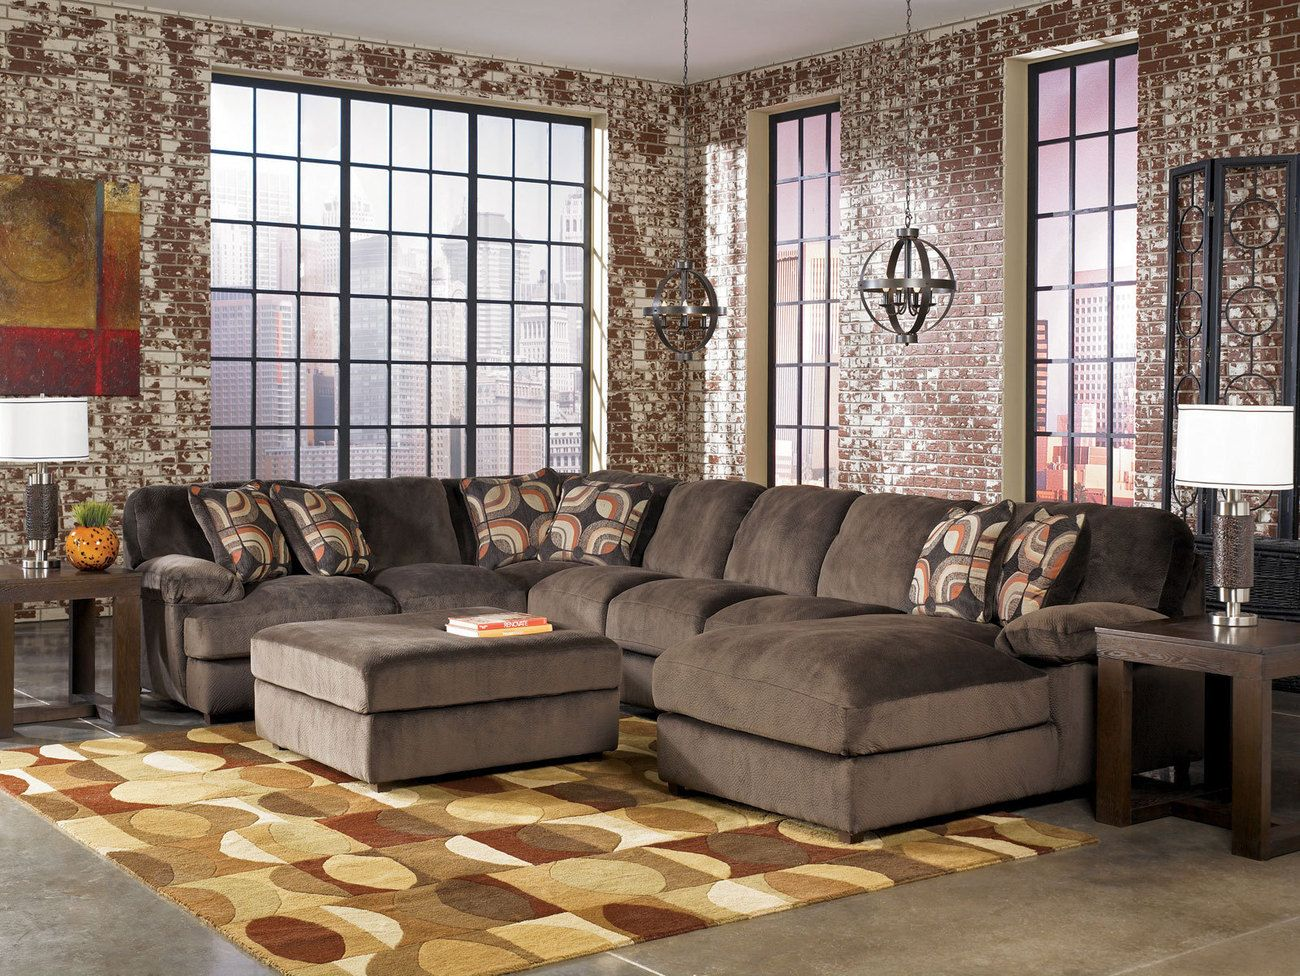 Exceptional Best Oversized Sectional Sofas   Http://tdmischke.com/best Oversized